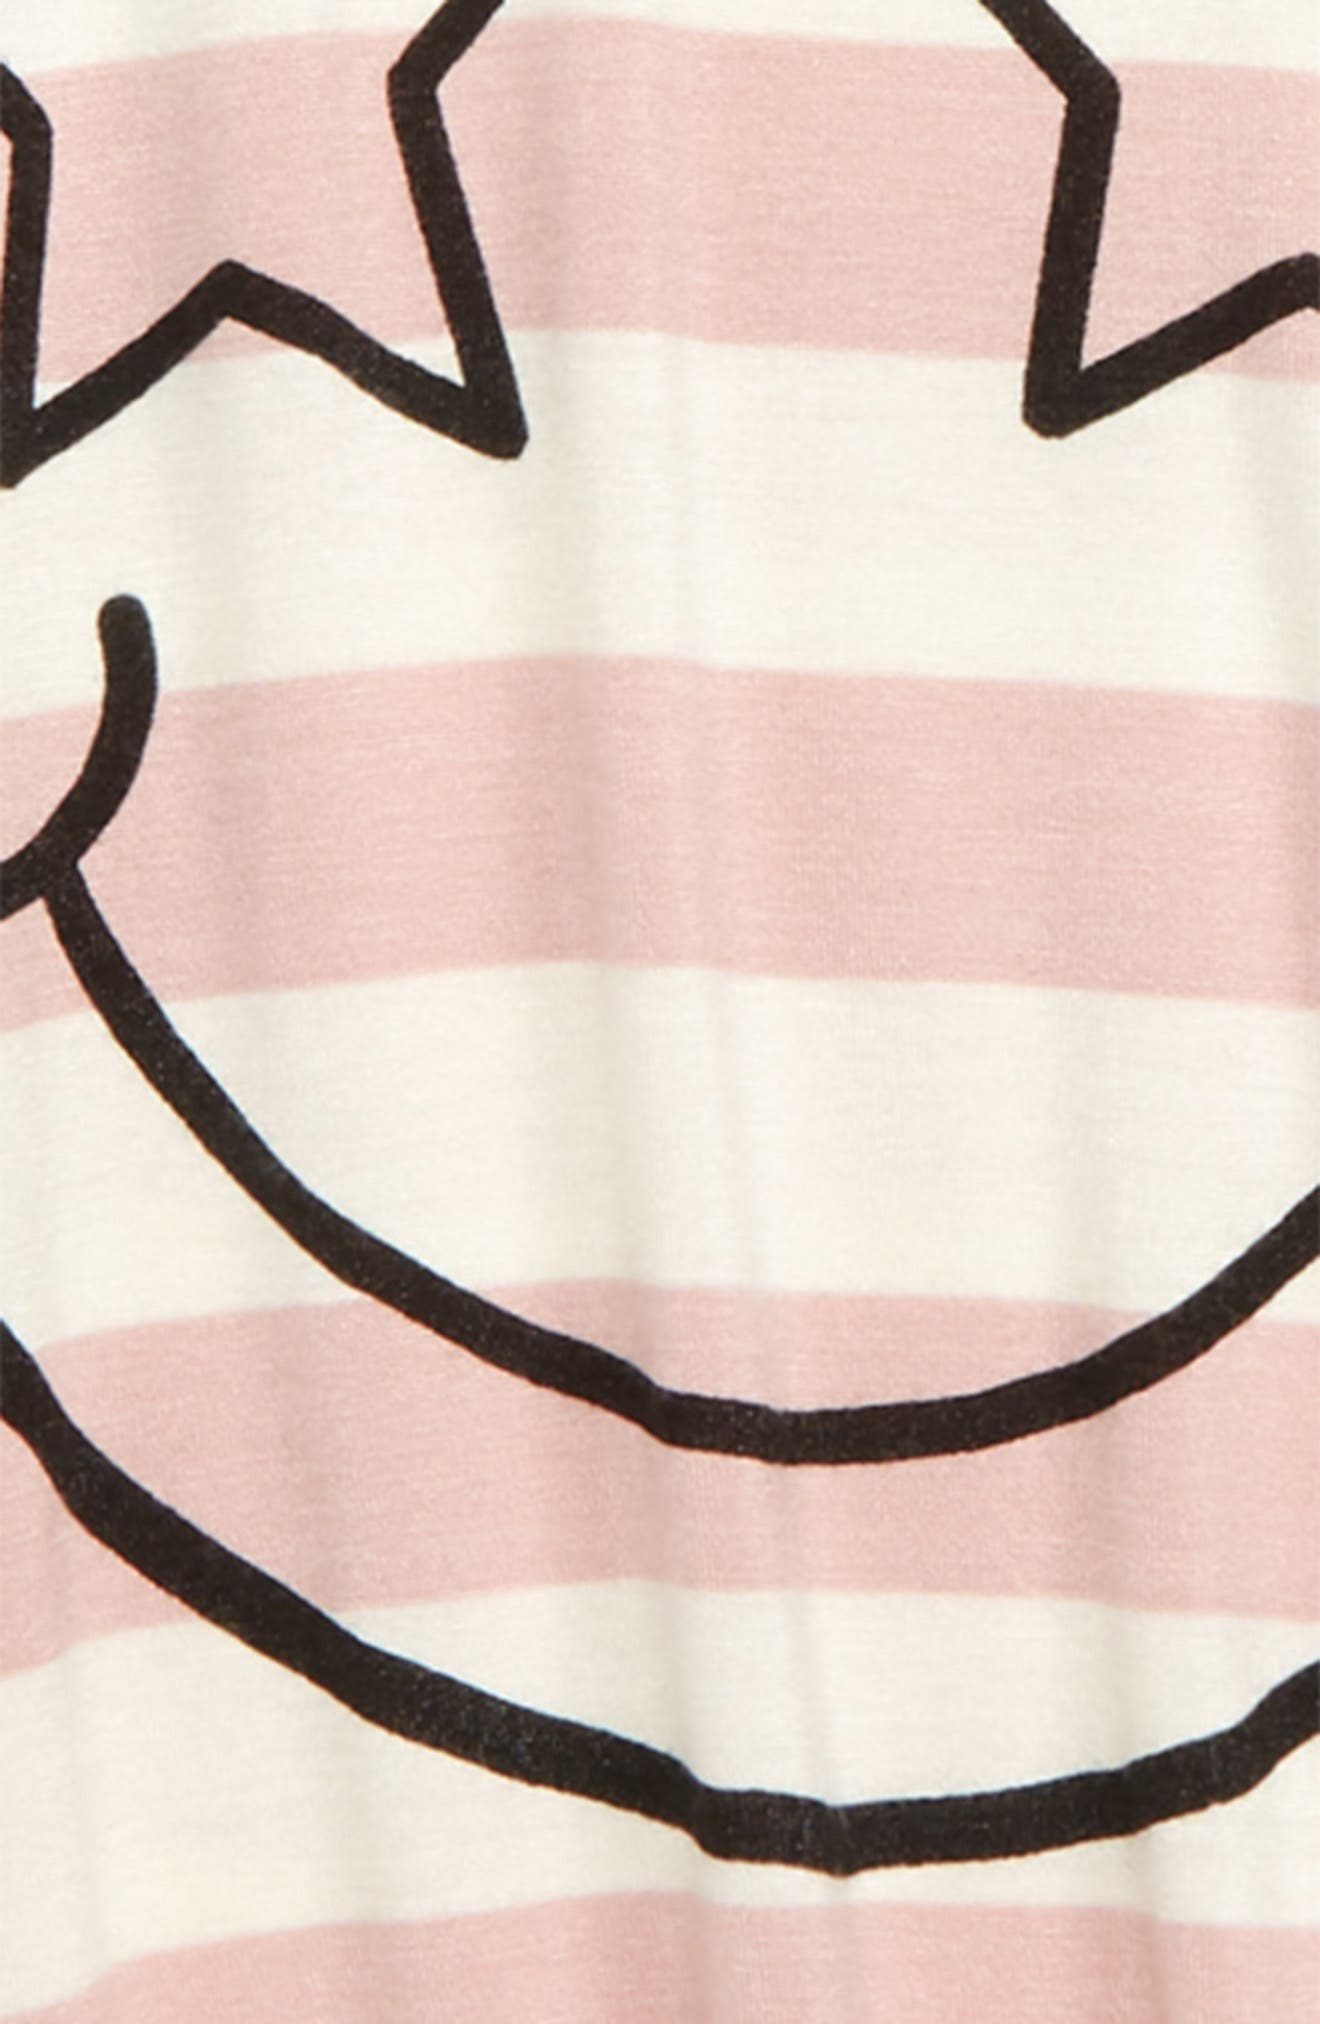 Smiley Star Tee,                             Alternate thumbnail 2, color,                             PINK PEACHSKIN SMILEY FACE